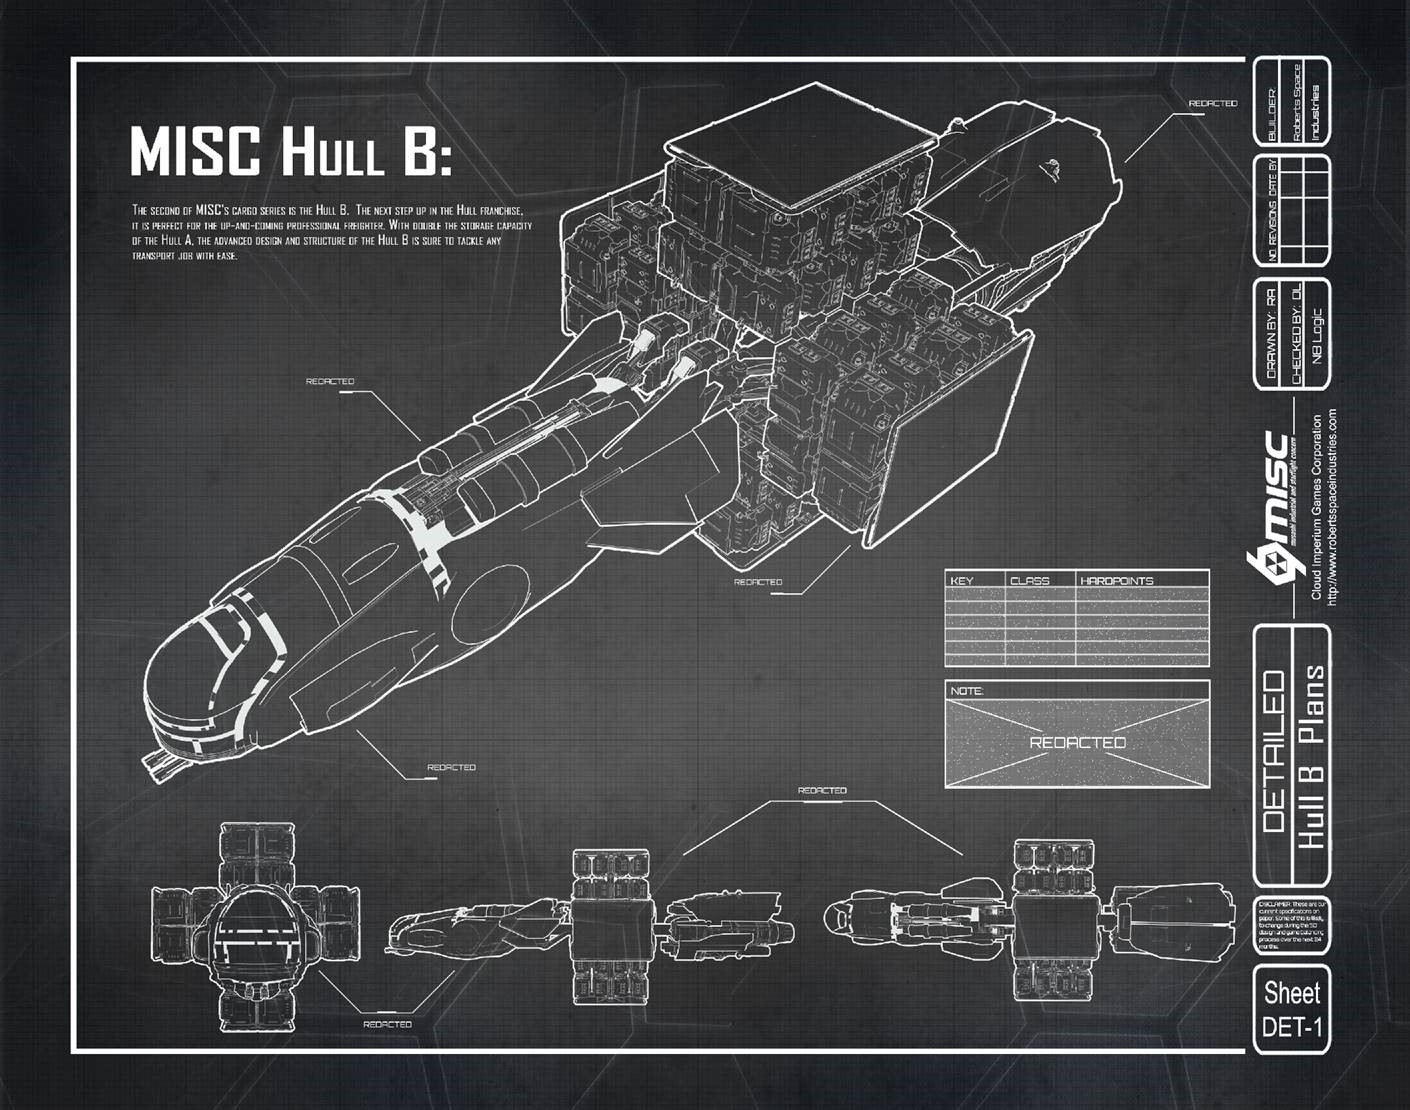 https://robertsspaceindustries.com/media/sbiwq31piqkrsr/source/Hull_B_Blueprint.jpg